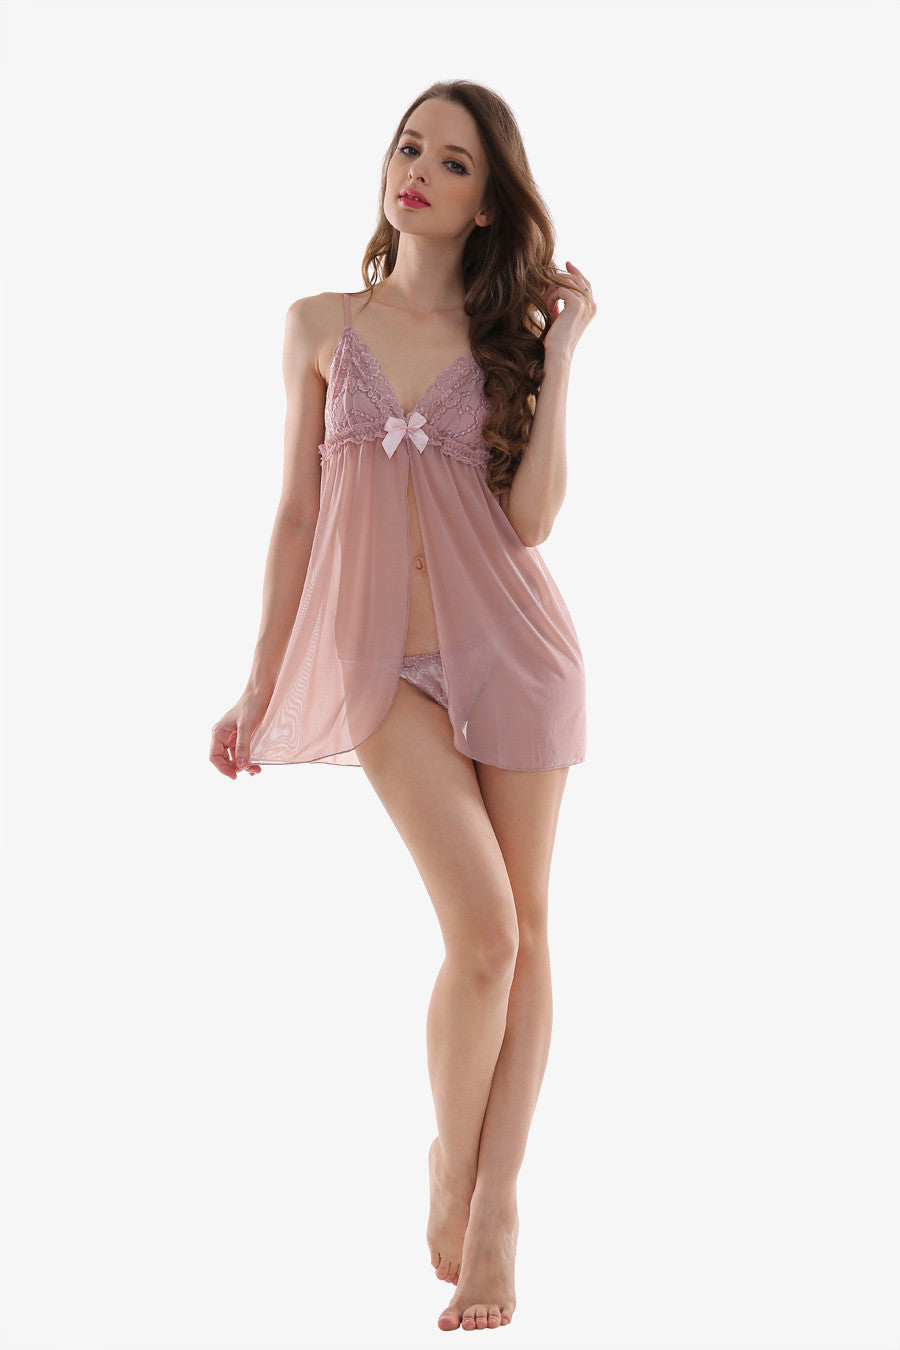 Sexy Pink Visible Sleepwear